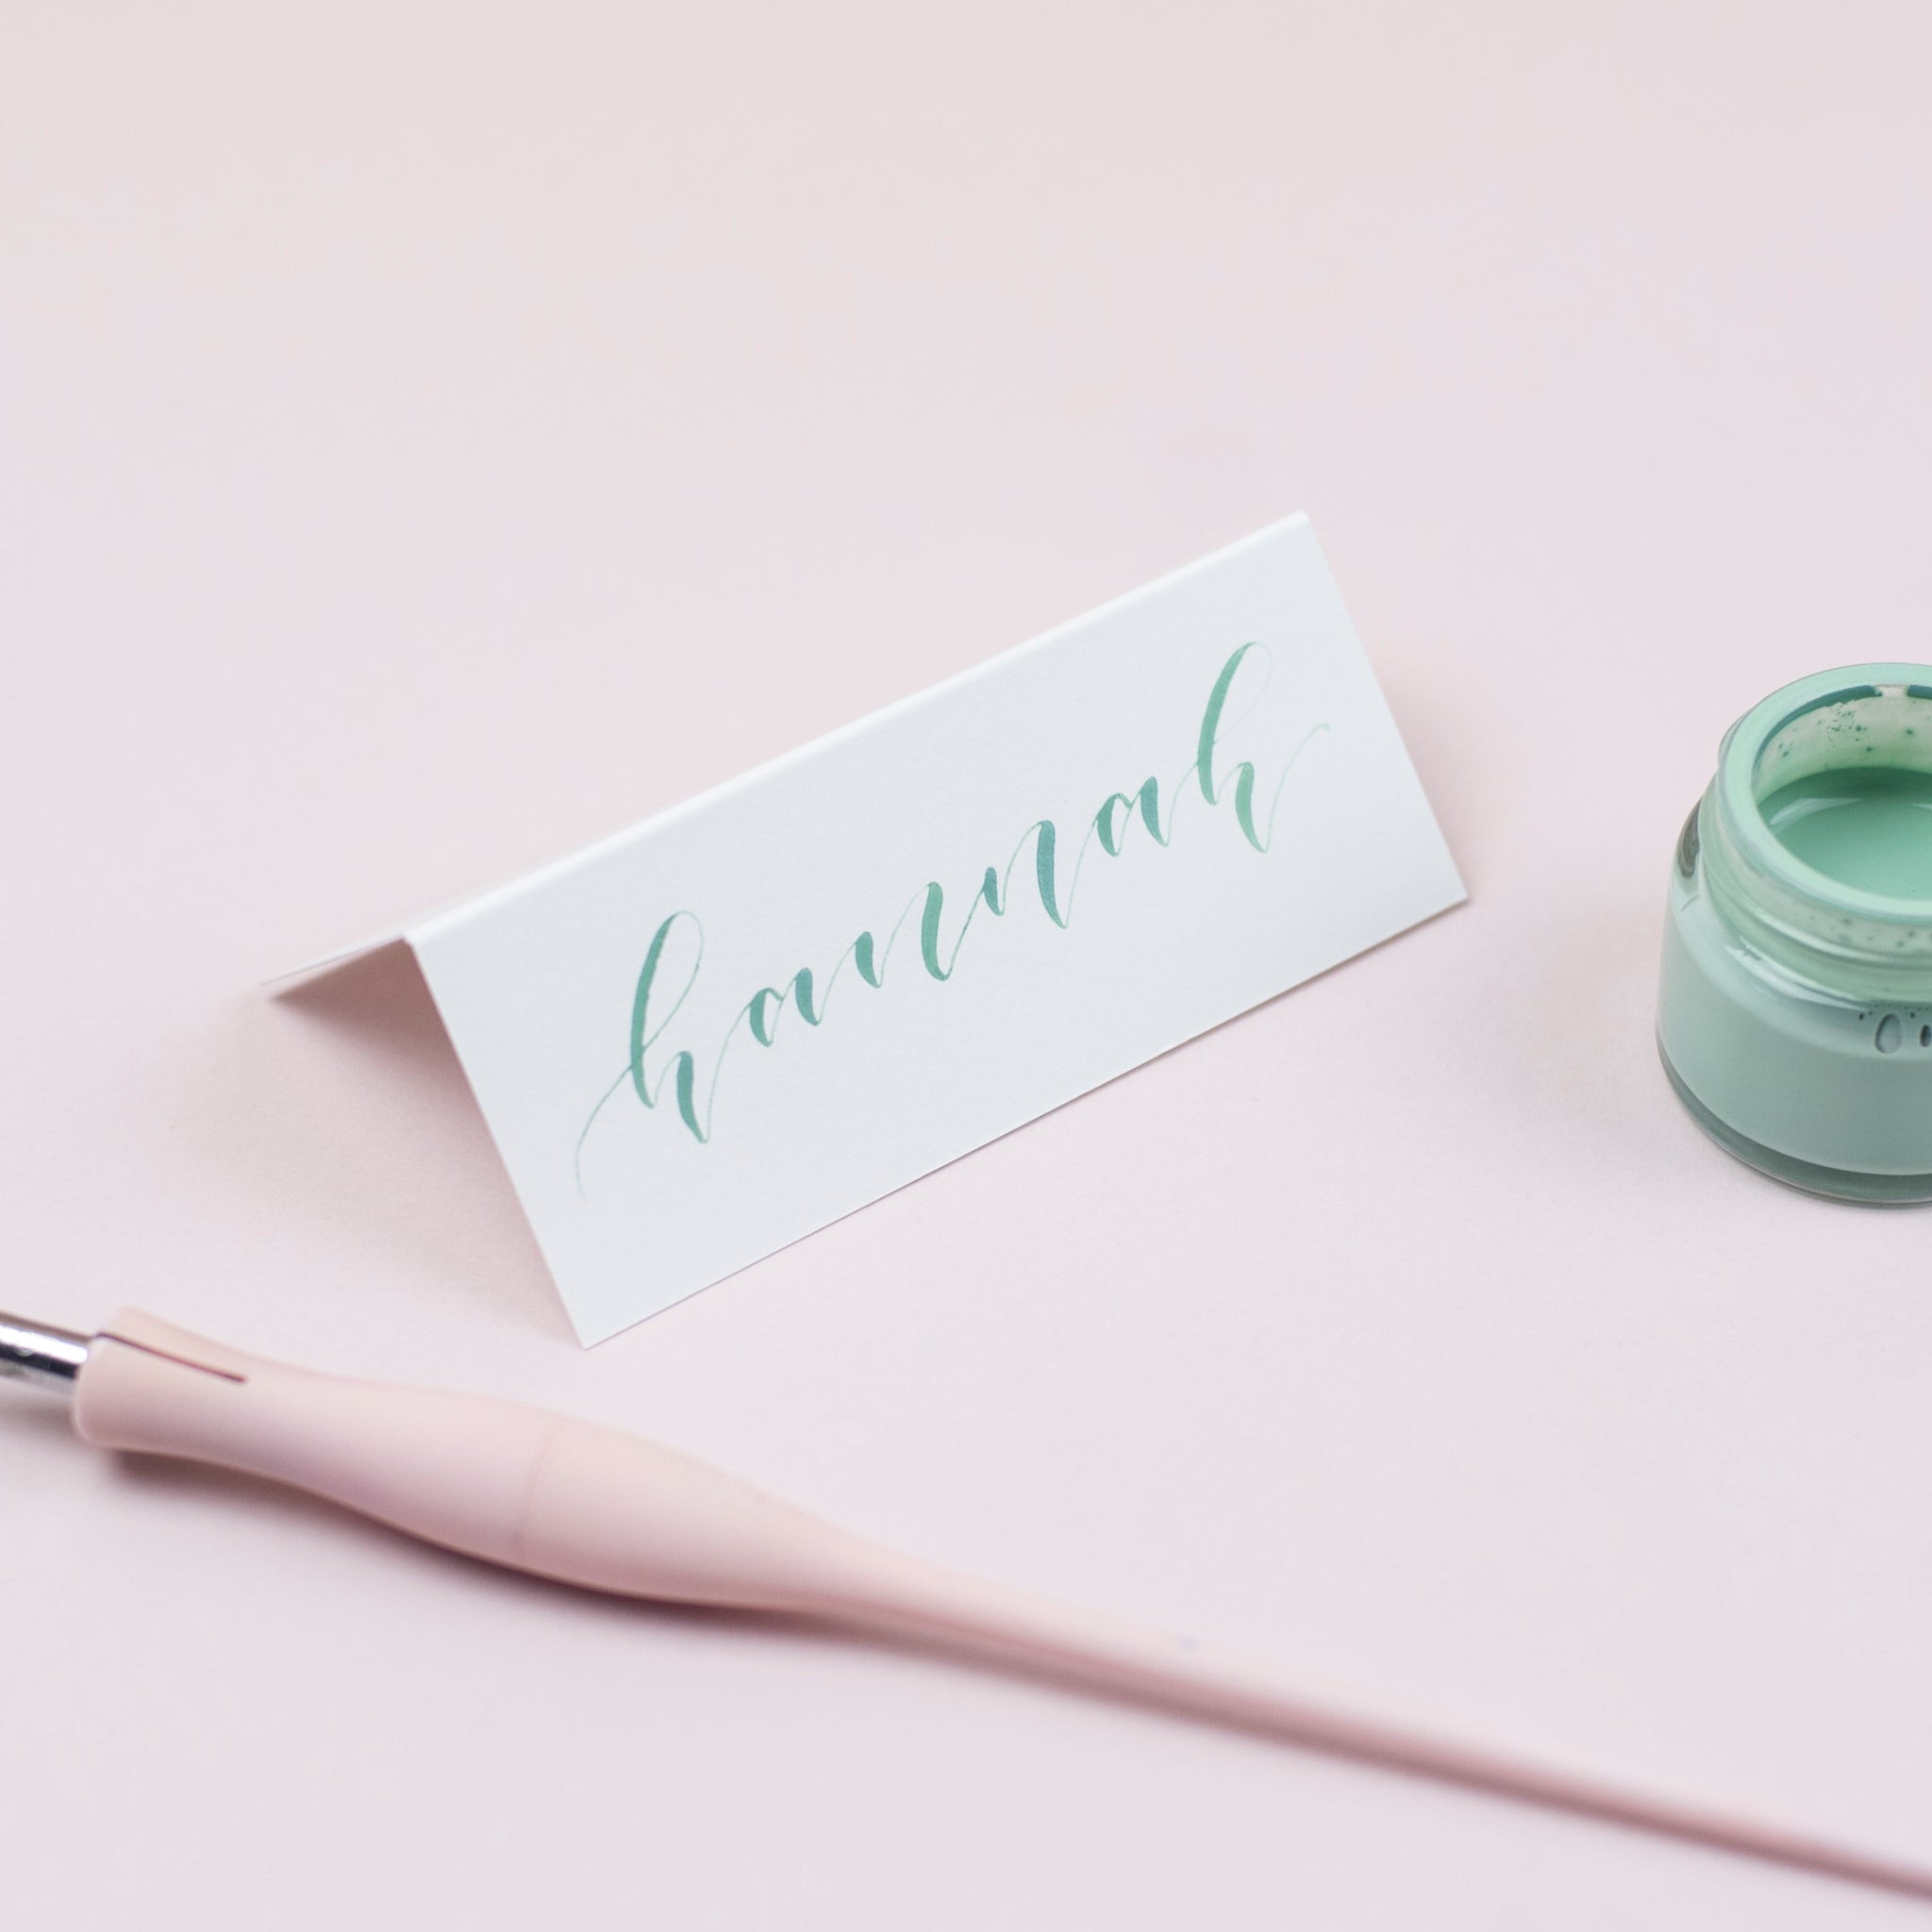 Luxury sage place cards